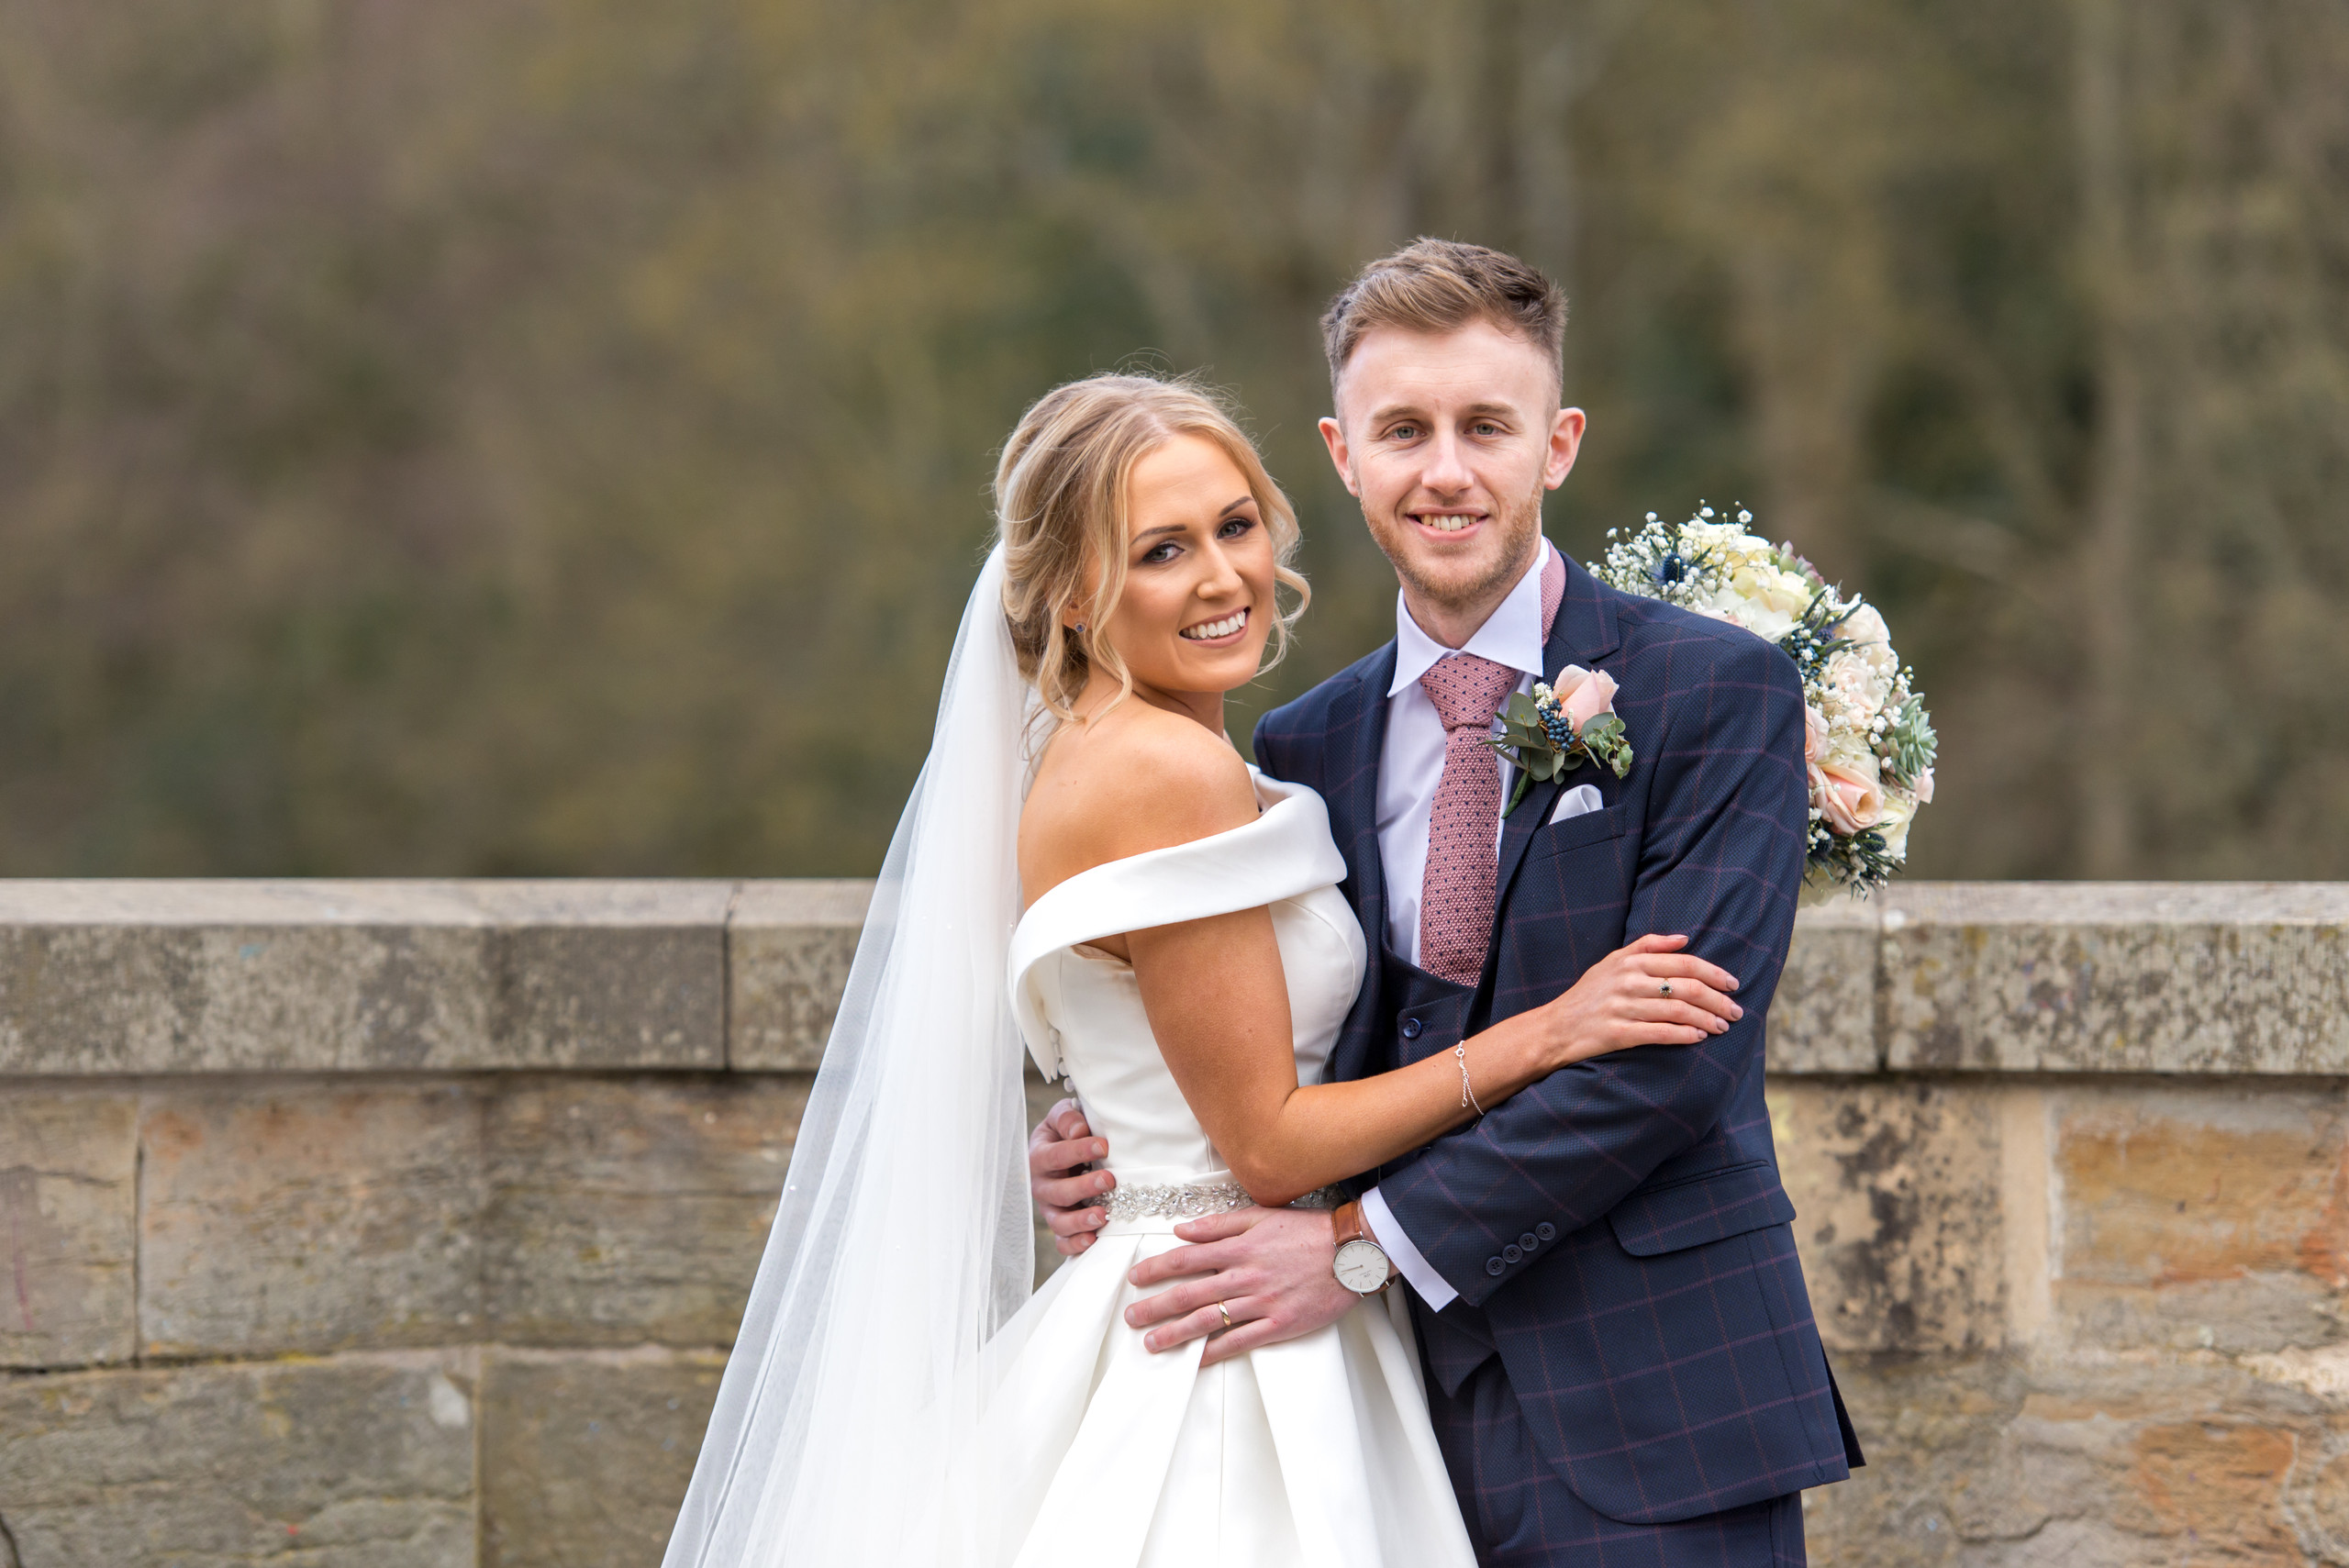 Relaxed wedding photography of bride and groom on wedding day on Prebends Bridge in Durham